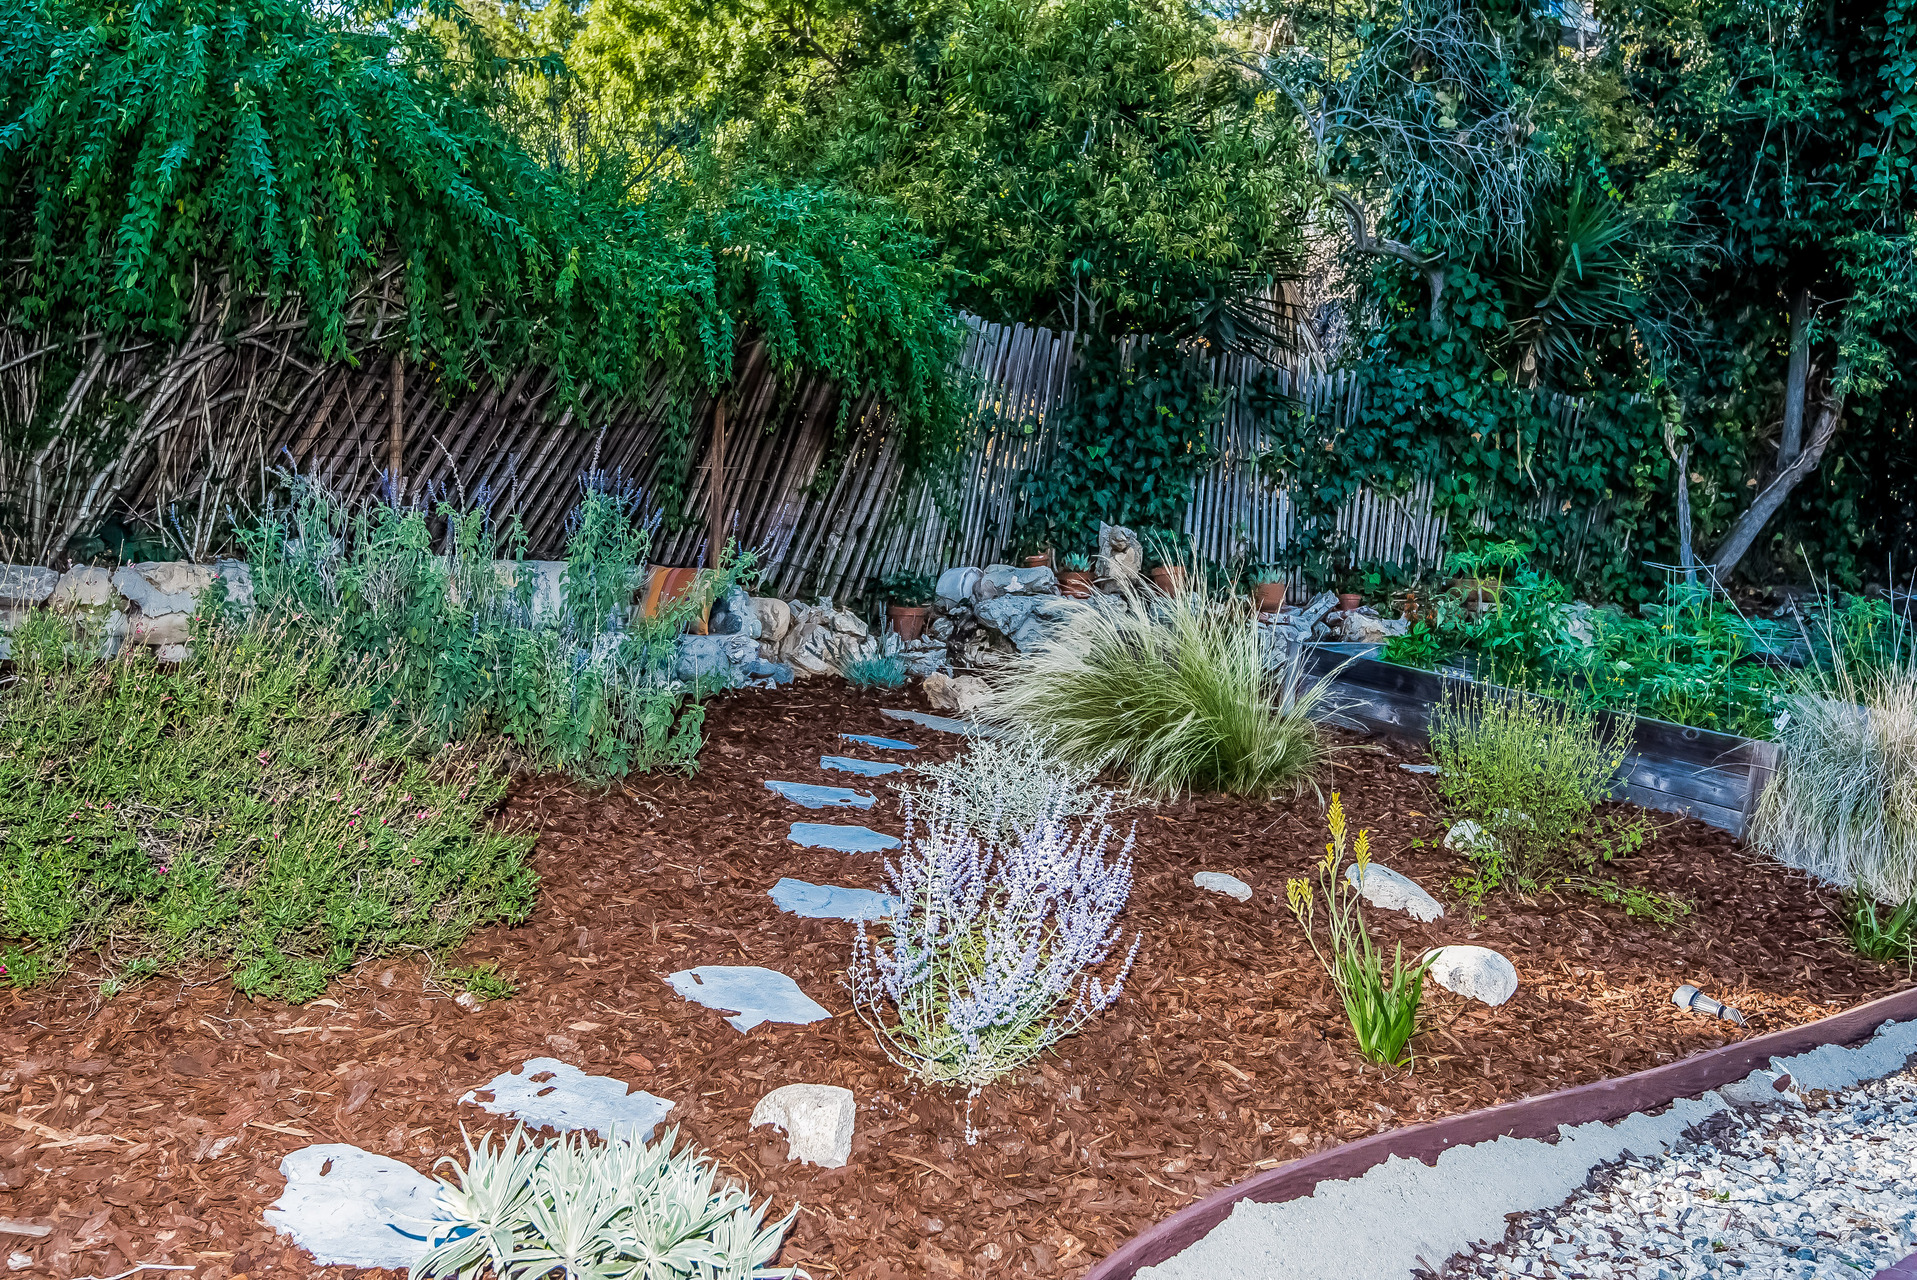 032-Backyard__upper_garden-2907672-medium.jpg